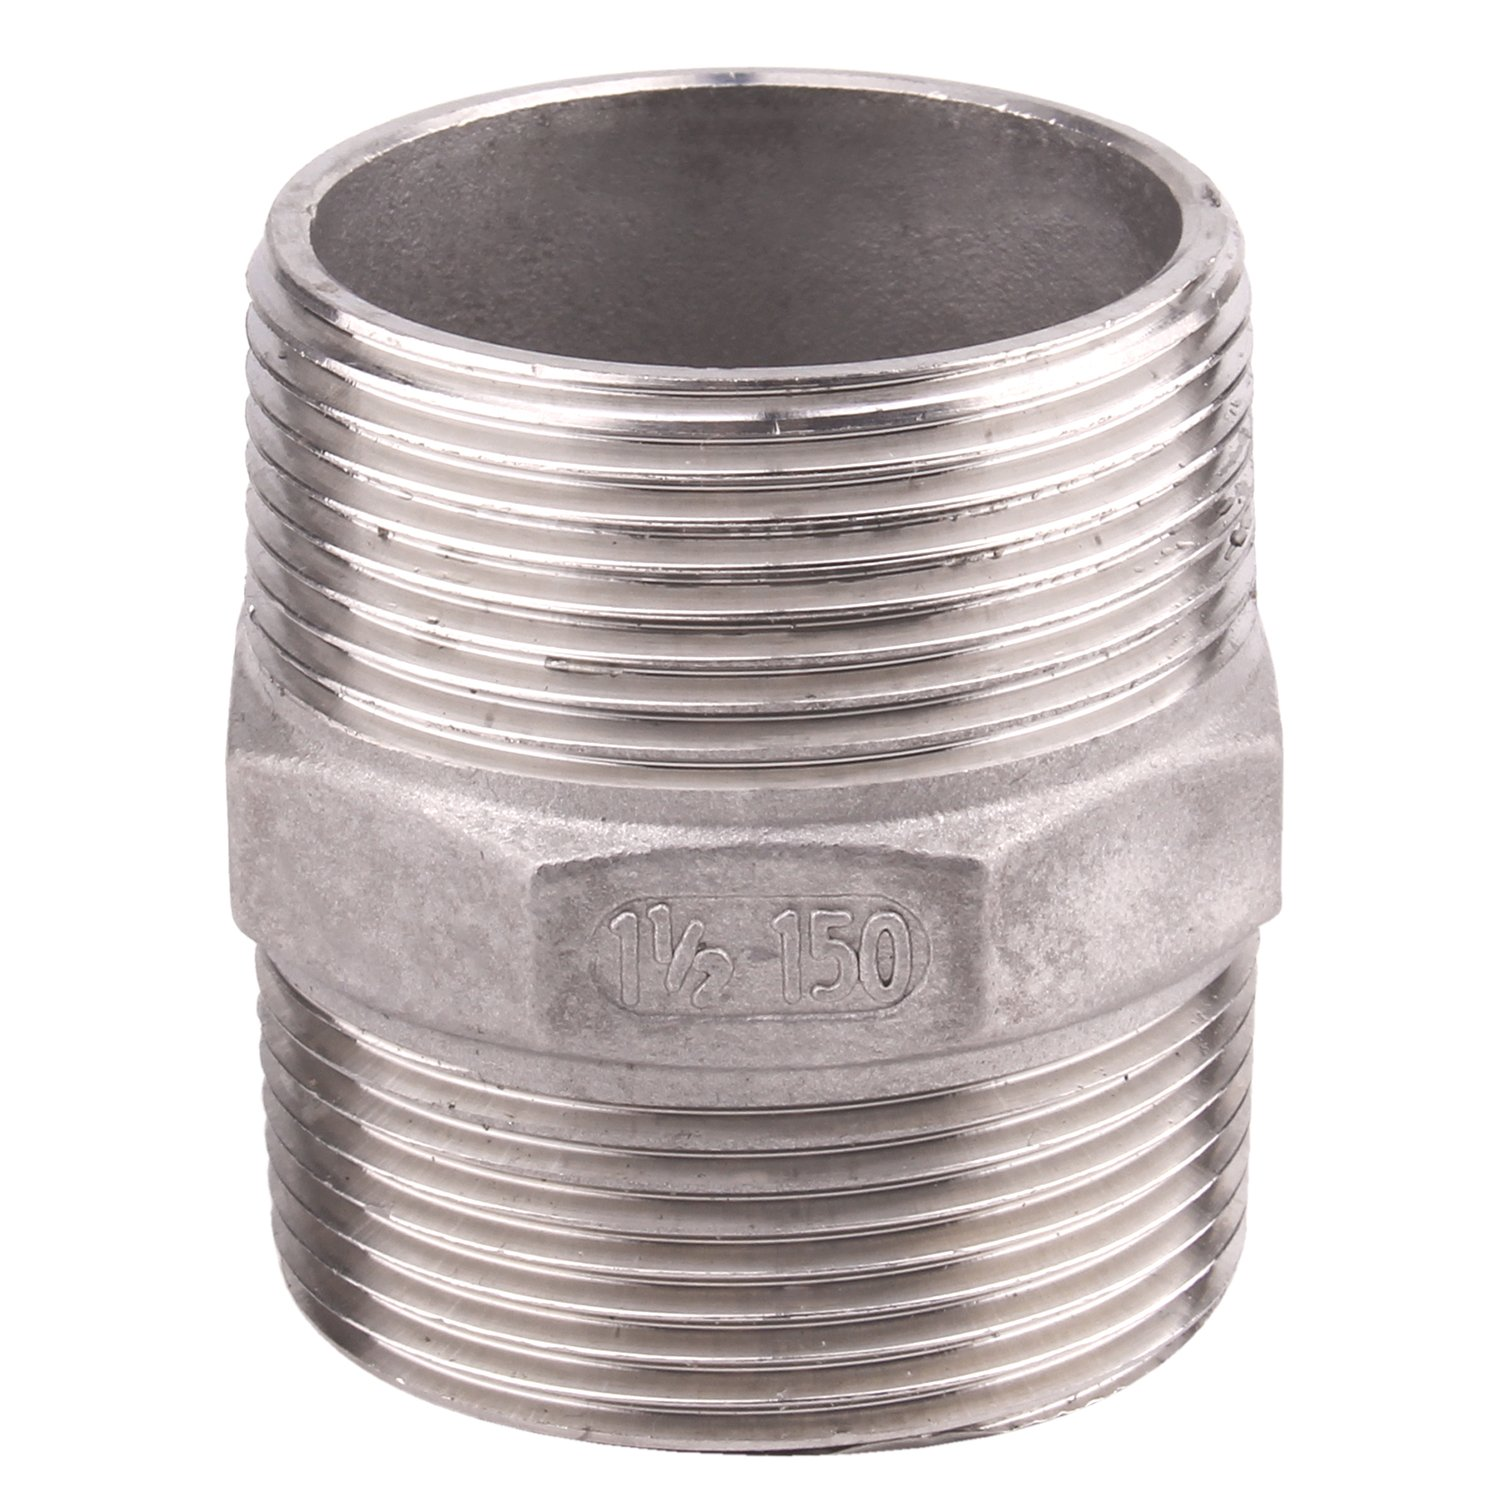 Hex Nipple 1 1/2'' Male NPT - DERNORD Stainless Steel 304 Threaded Pipe Fitting 1 1/2'' for Brew Kit, Home Piping Application